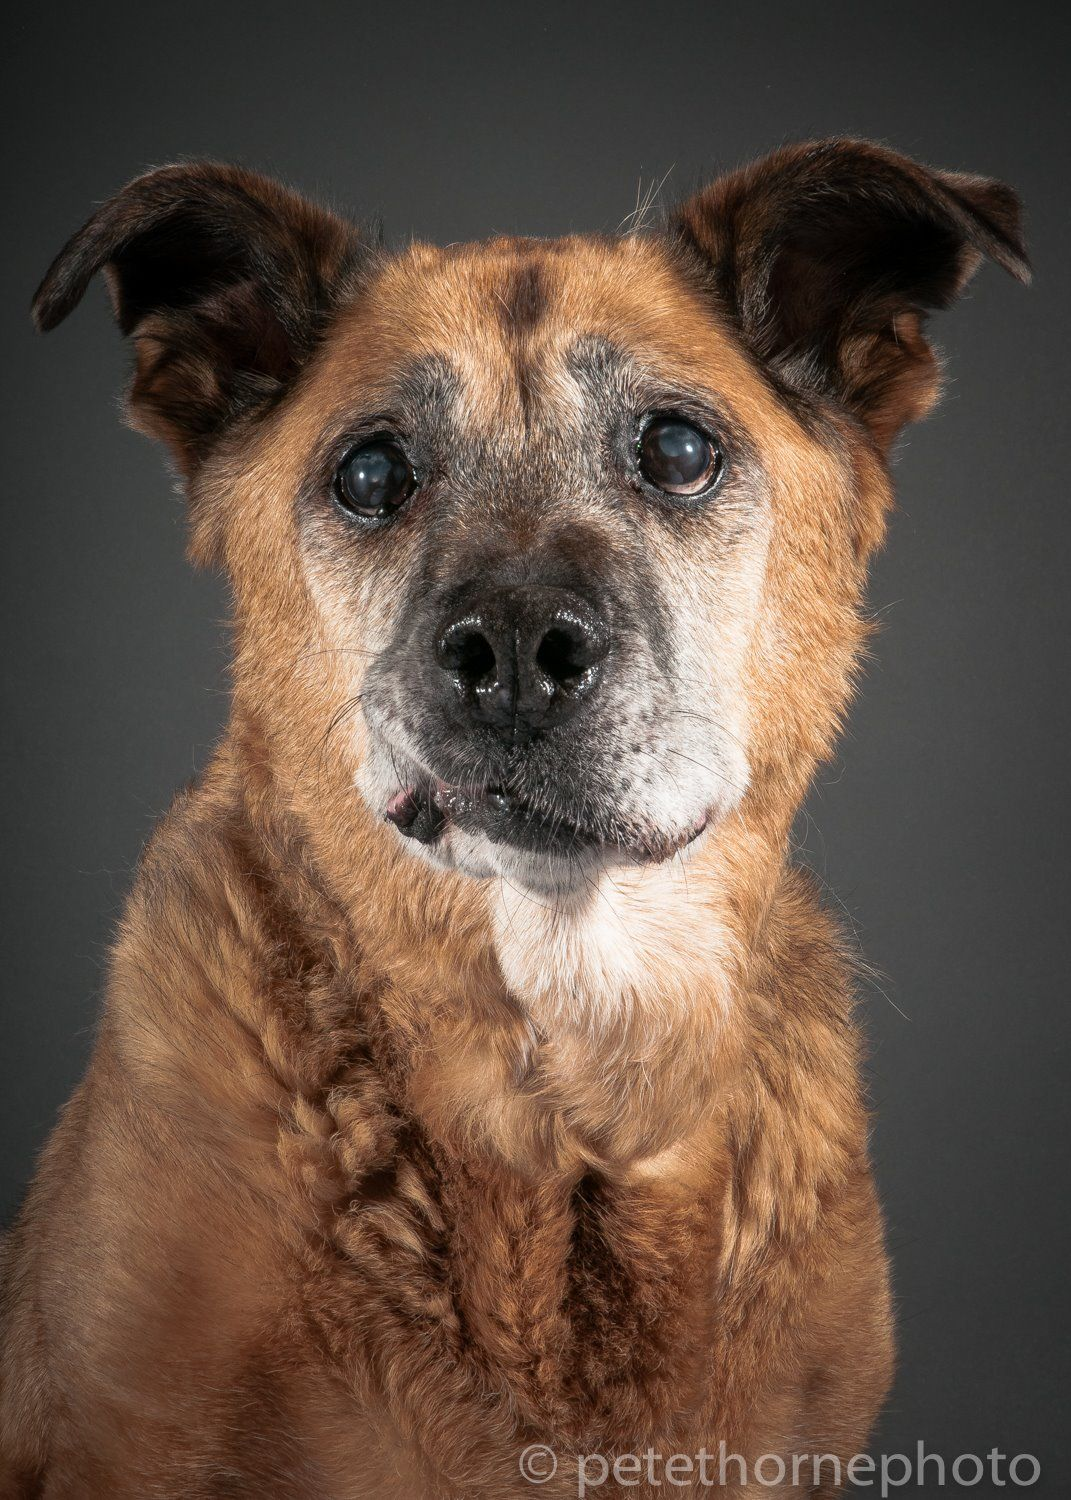 16 y/o Shep w/ SAINTS Rescue. Pete Thorne - Old Faithful Project